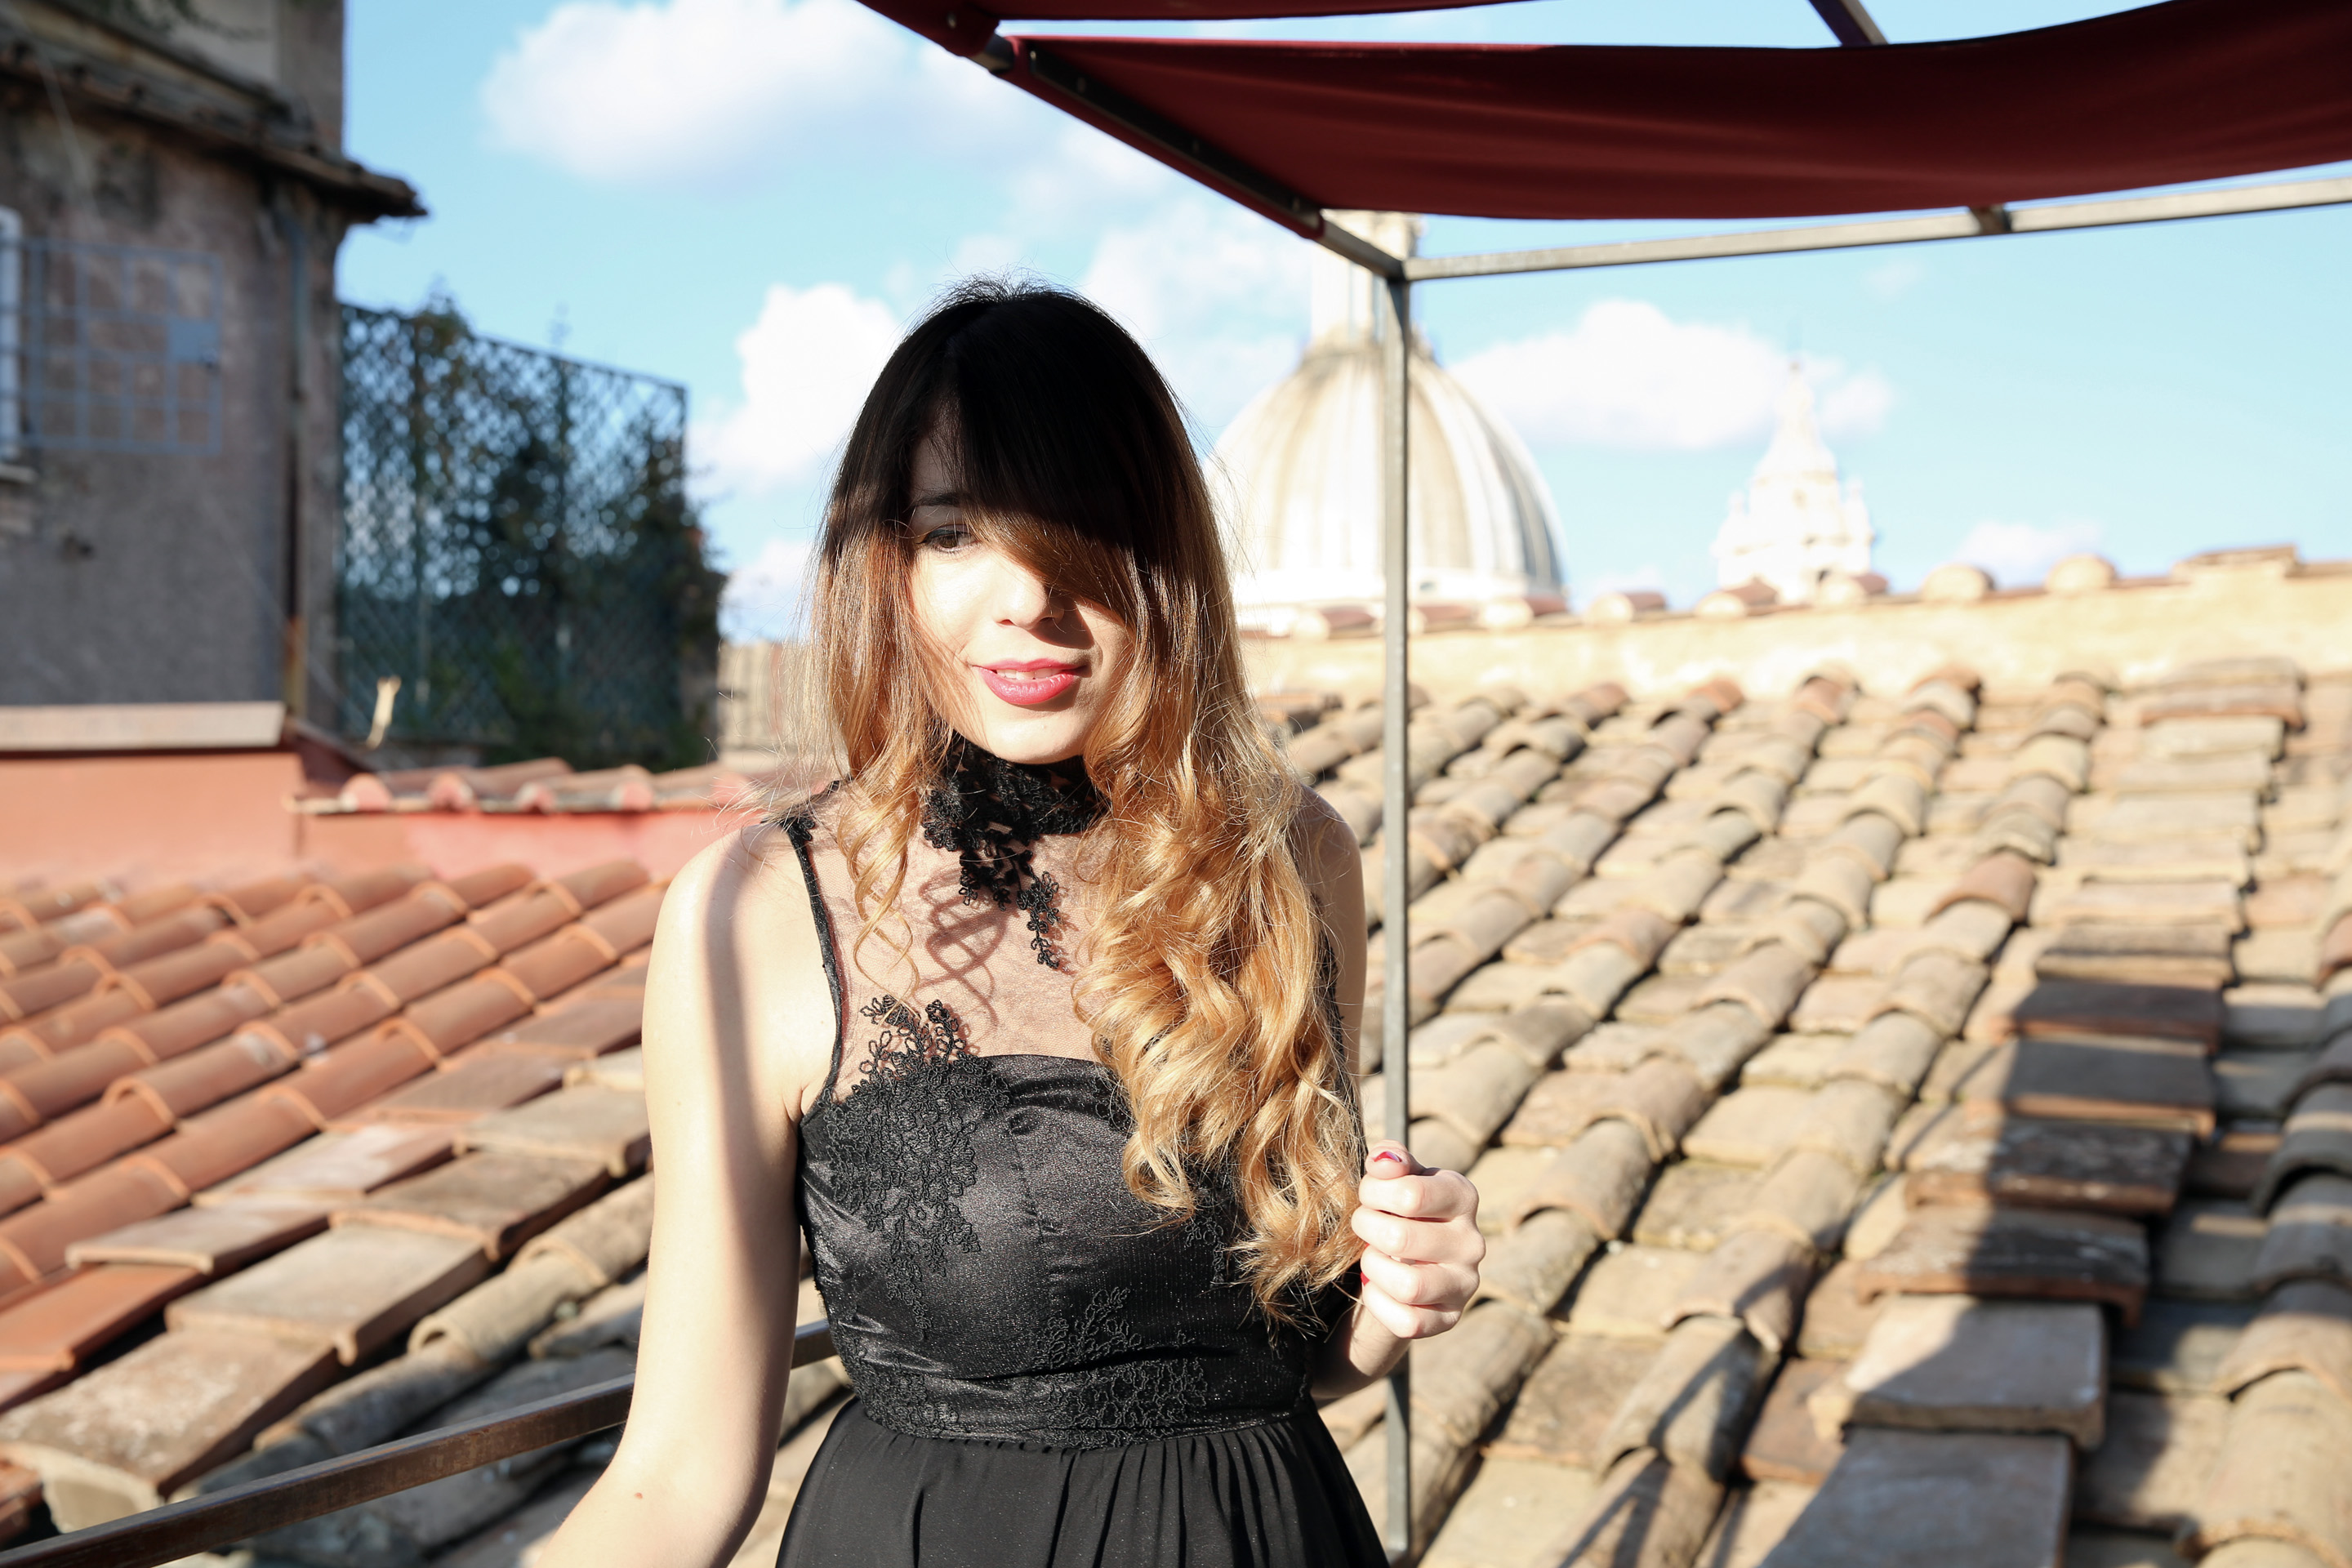 23-2 DayDream in Rome with Giovanna Nicolai dress & Danilo Di Lea shoes.